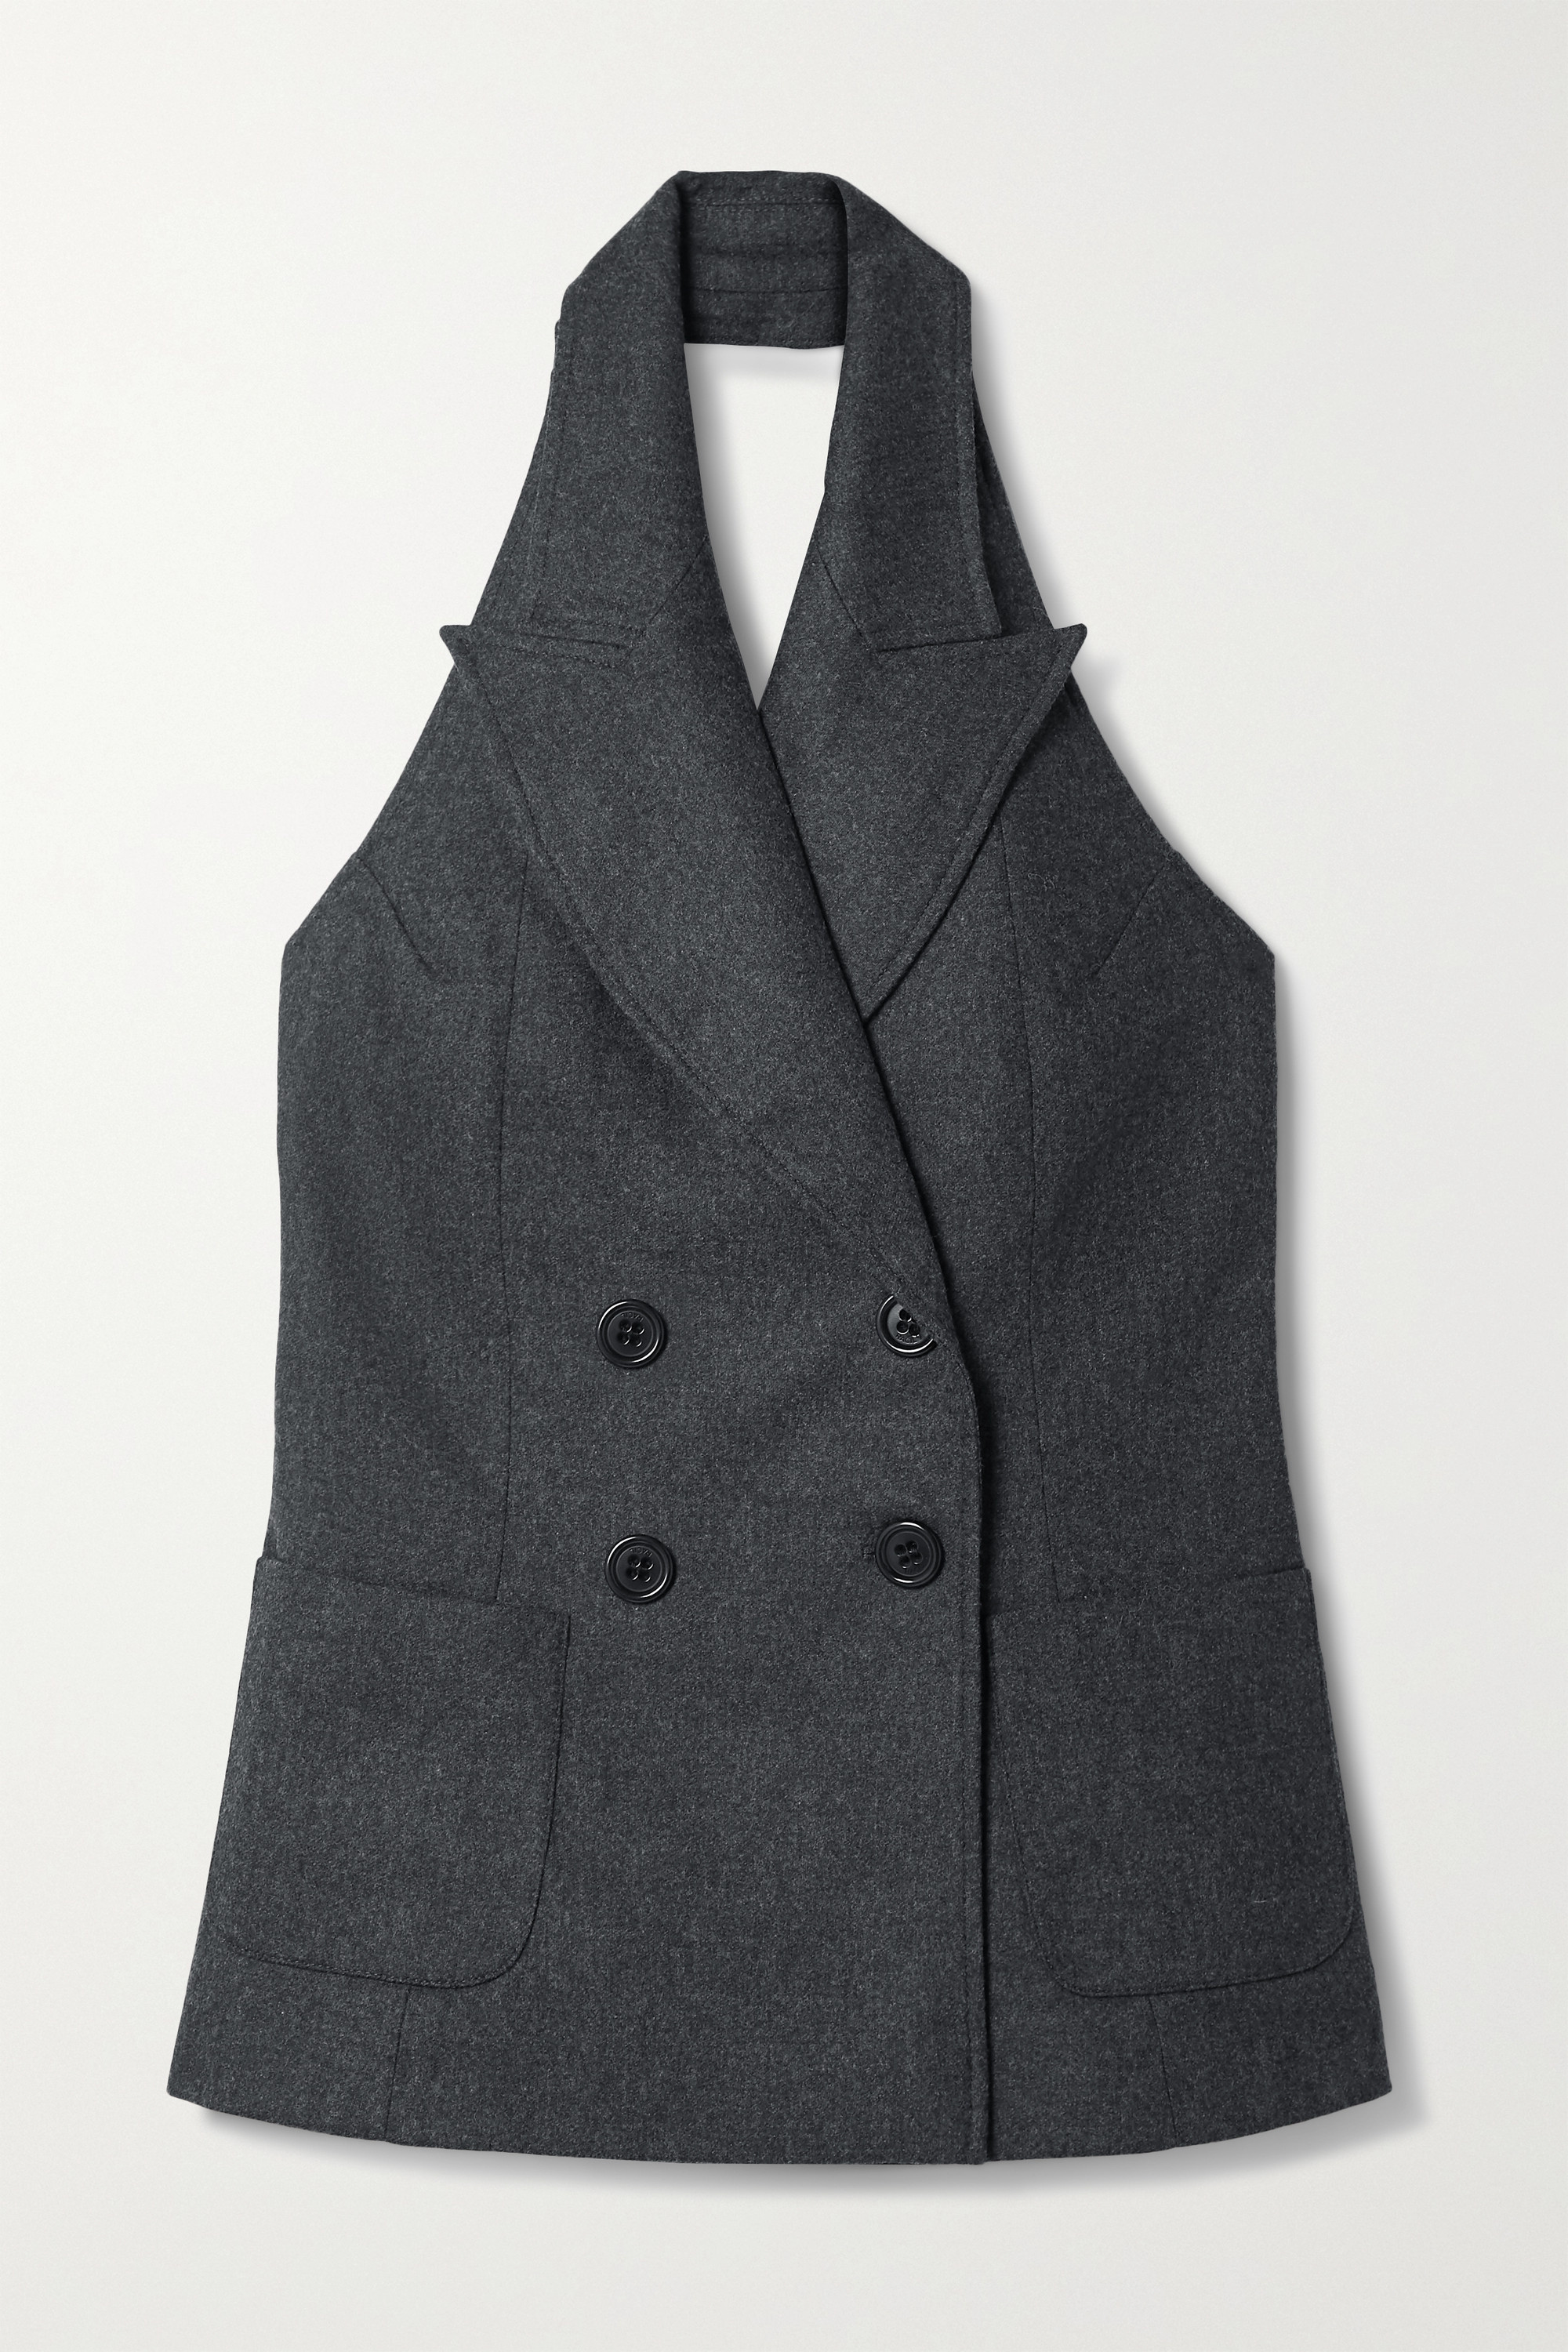 Racil Cathy double-breasted wool-blend halterneck vest